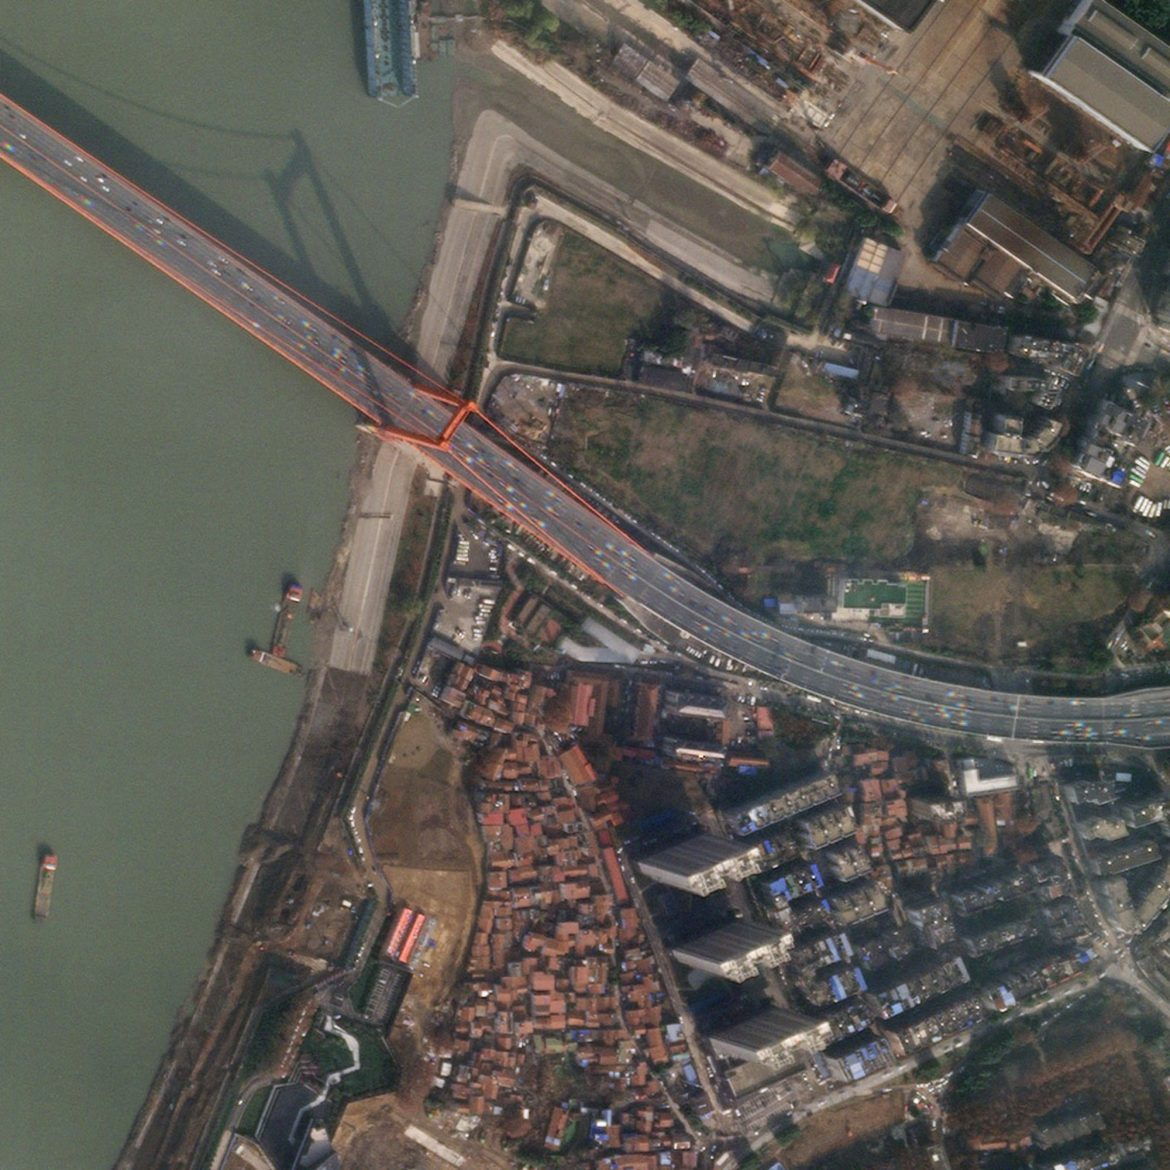 Wuhan-Janvier-2020-from-space